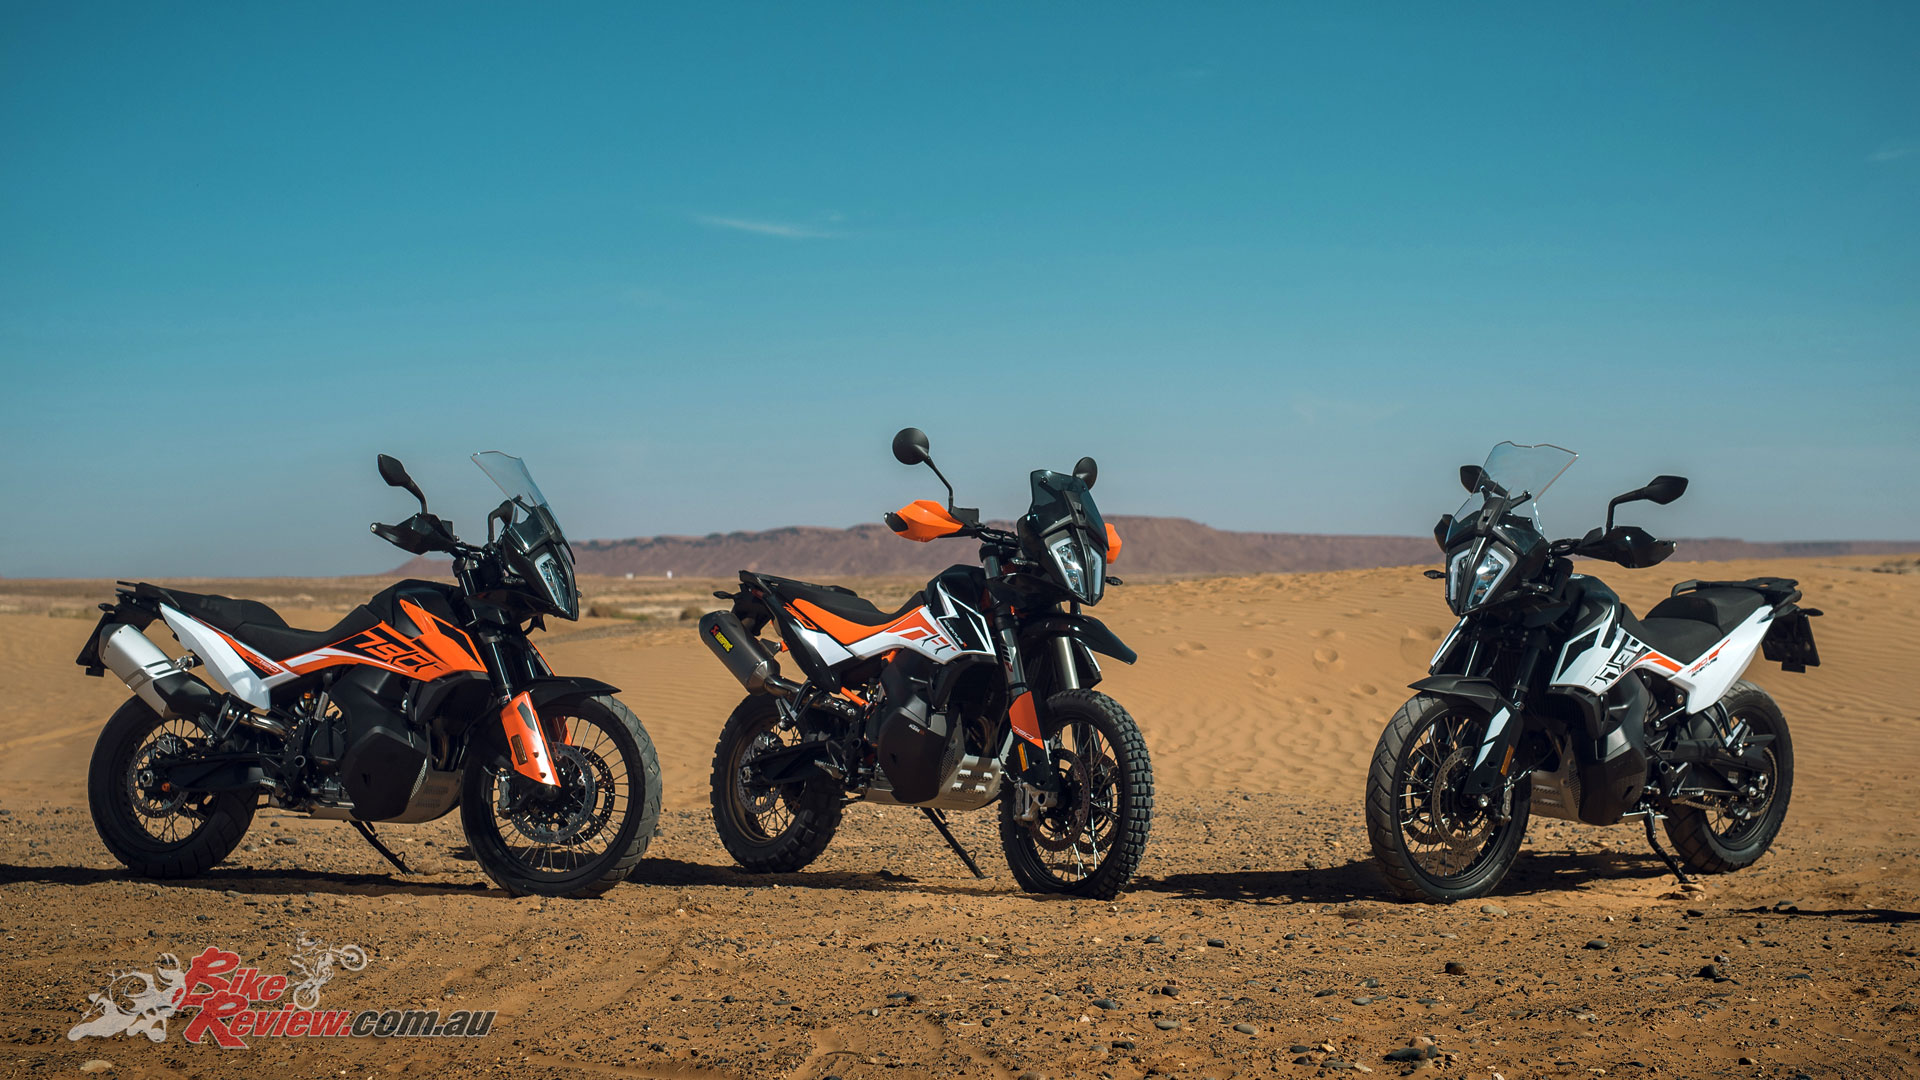 KTM launched their 2019 790 Adventure and 790 Adventure R models in Morroco